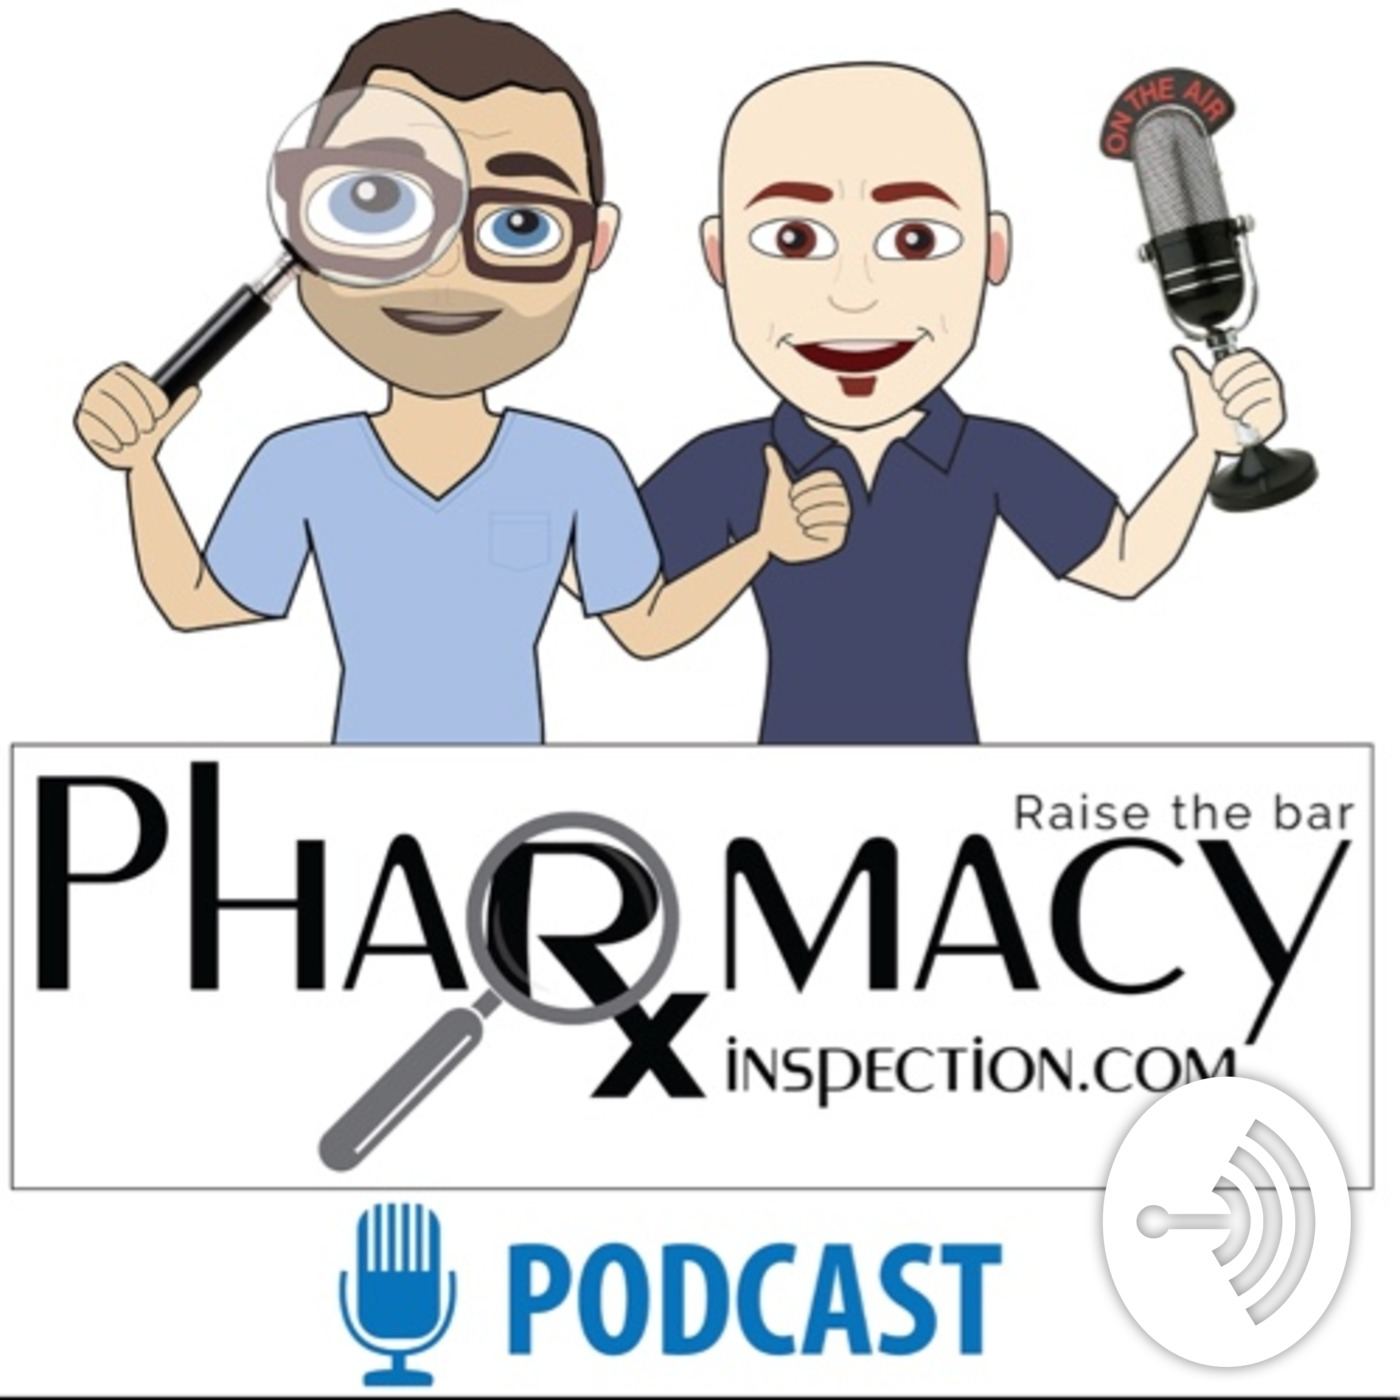 Pharmacy Inspection Podcast Episode 24 - Christine Roussel